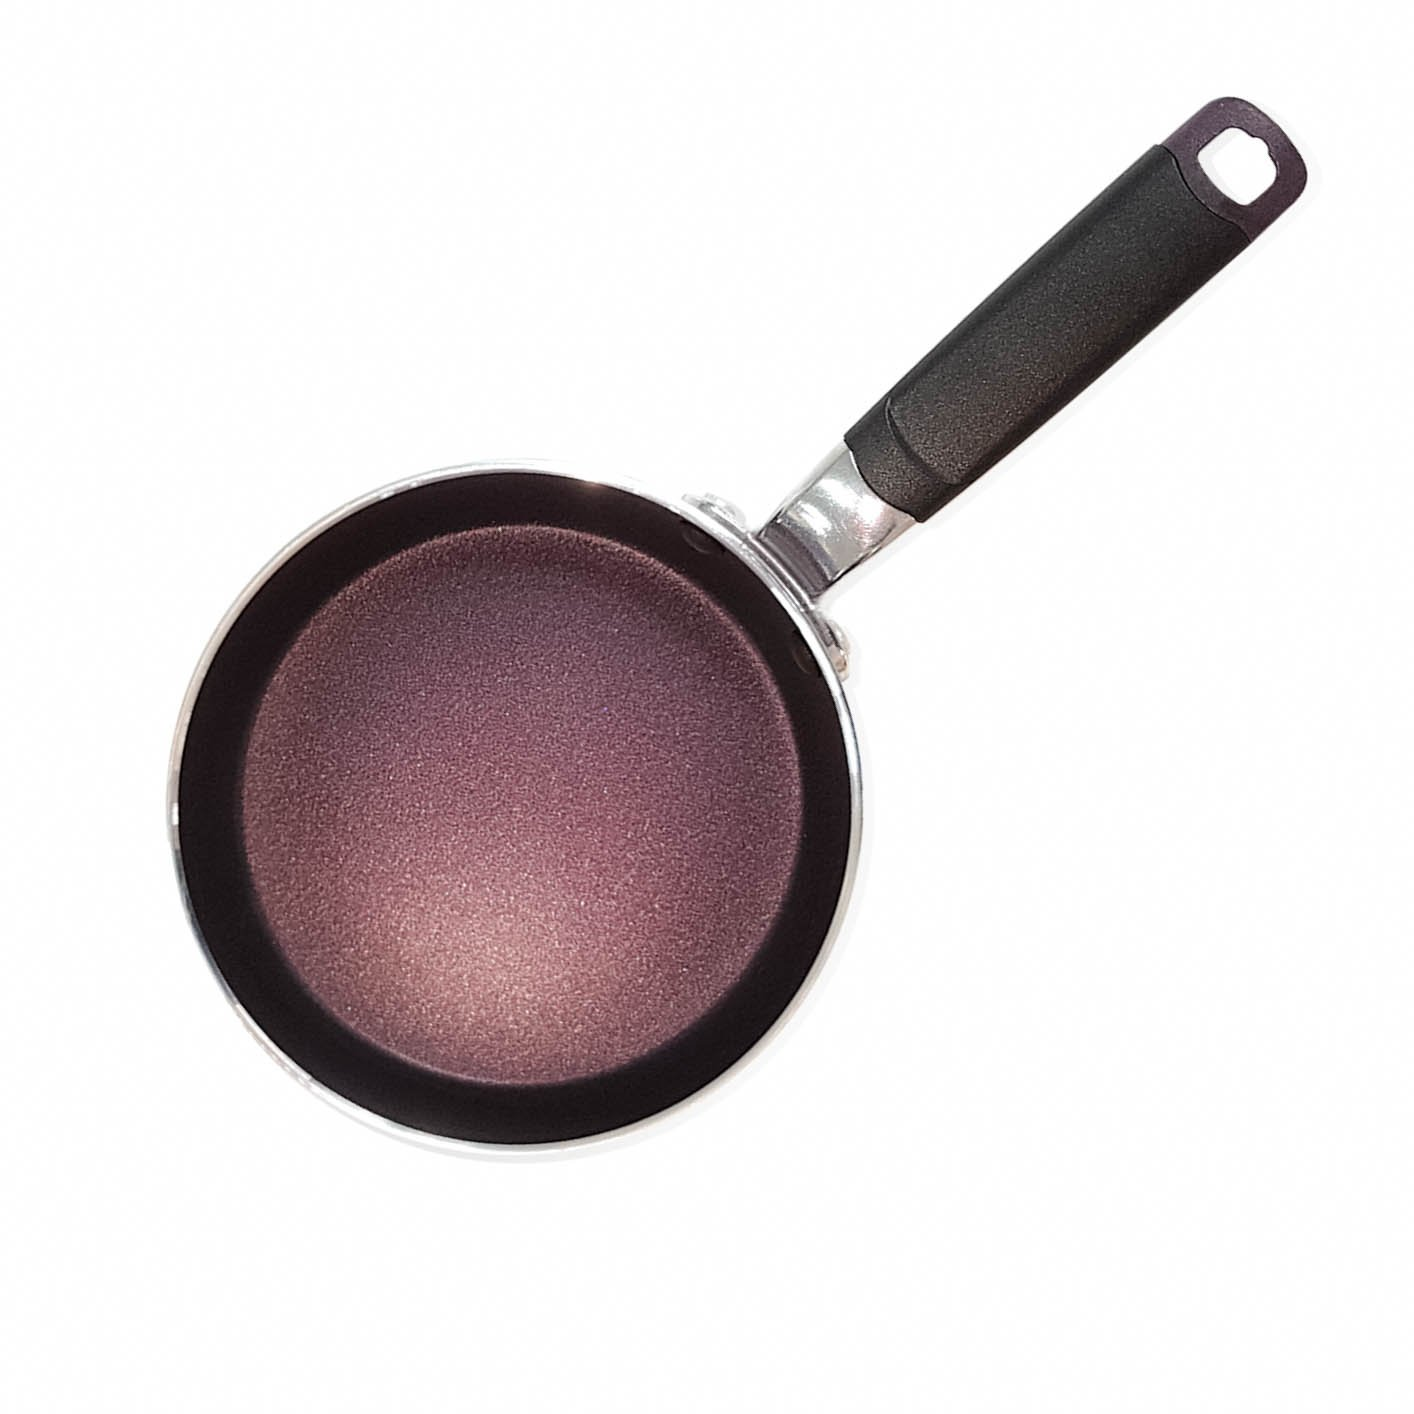 5.5-Inch One Egg Frying Pan Coated with New Teflon Select//Non-Stick Coating Aubergine Purple 5.5-Inch // PFOA Free TCMP14 - Colour Collection TeChef